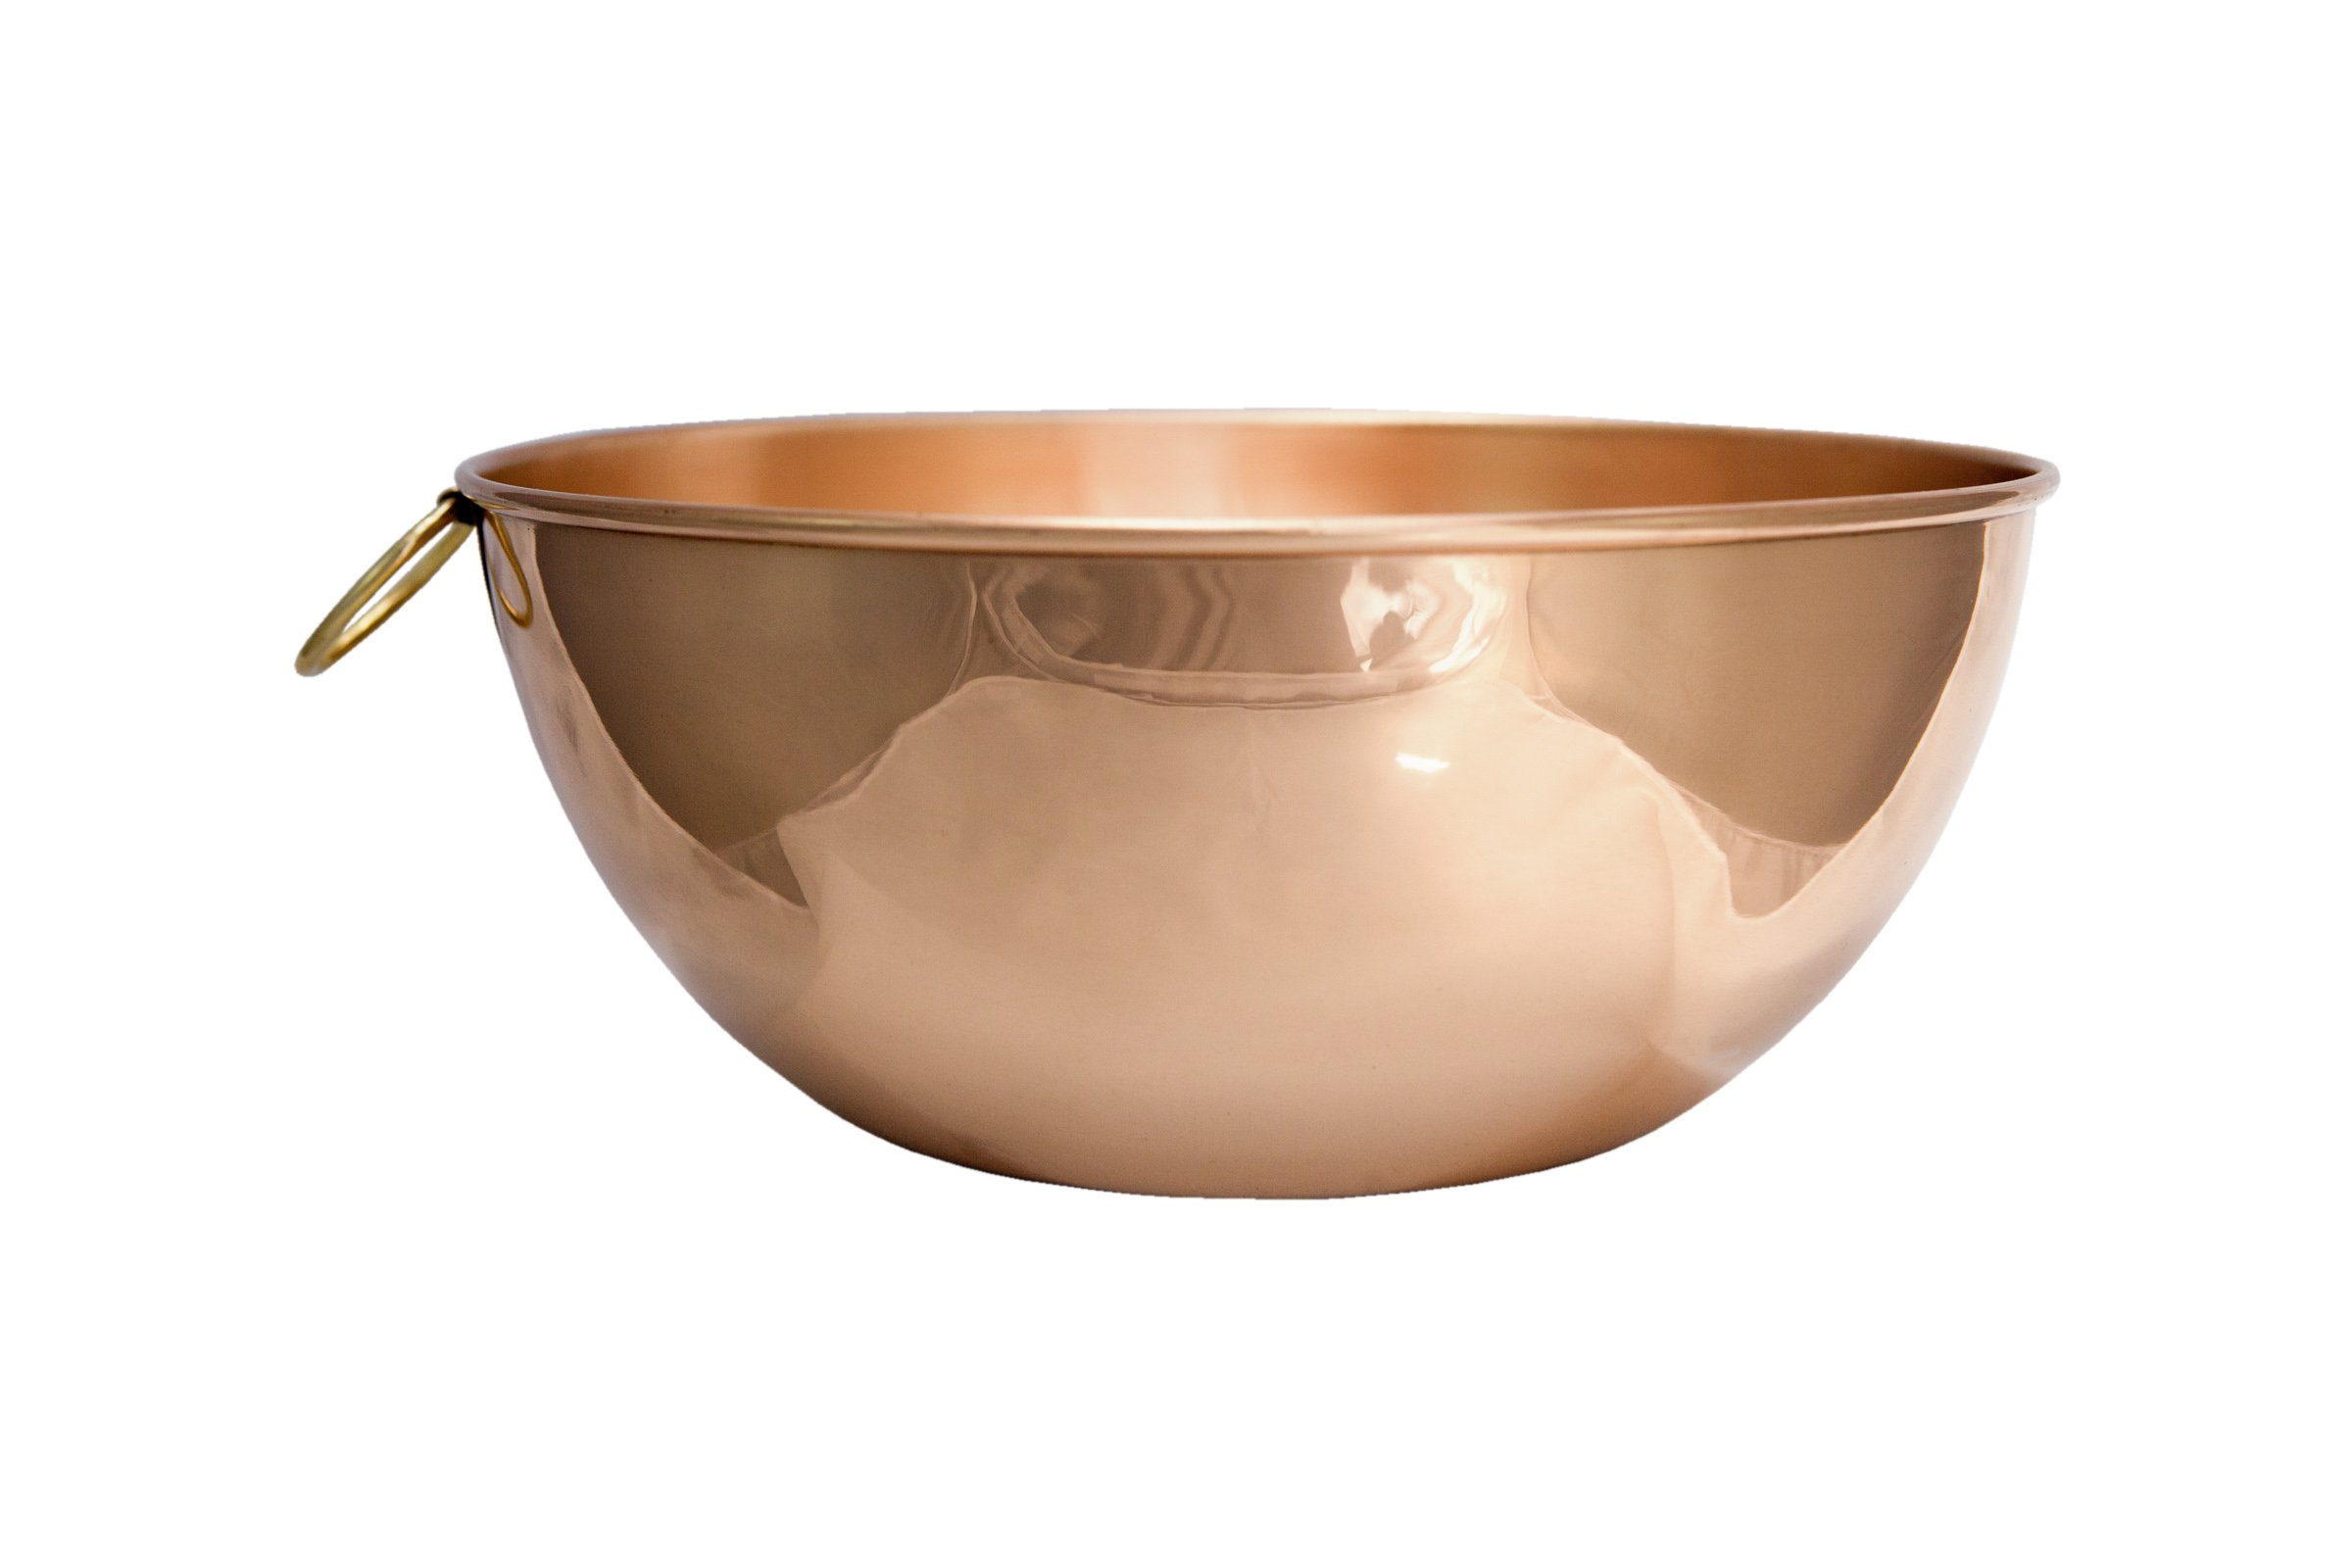 Premium Chef Quality Copper Mixing Bowl - 10.5'' diameter by Alchemade by Alchemade